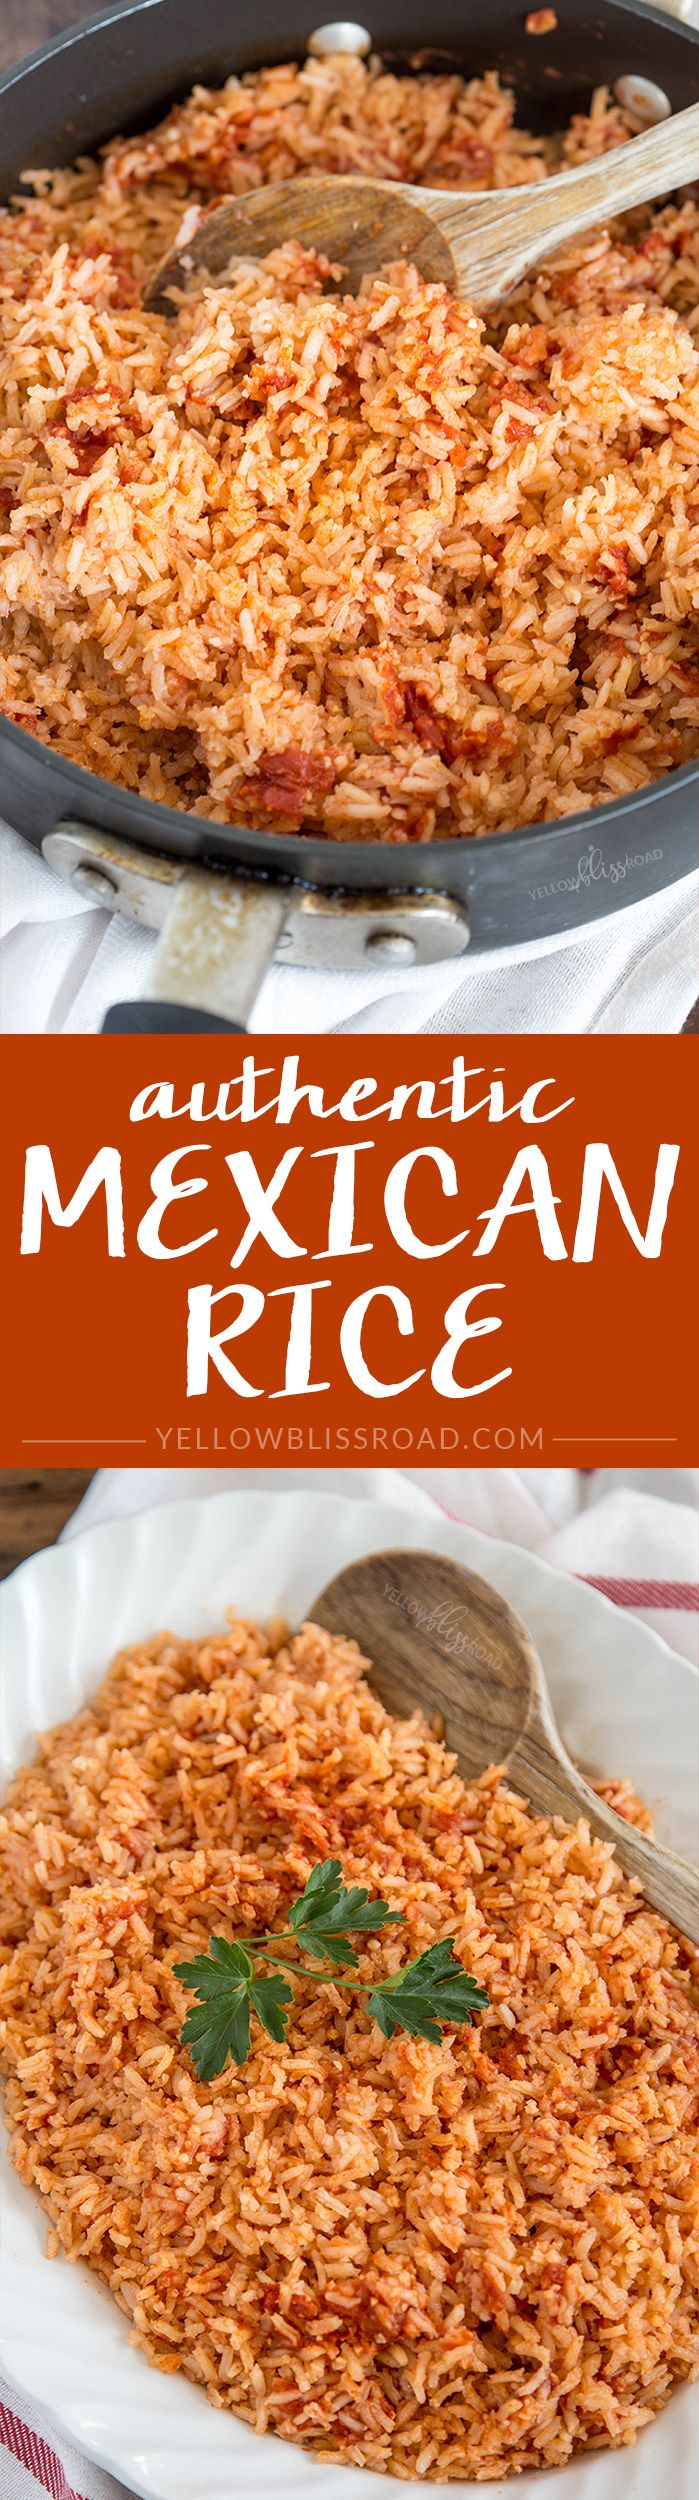 Authentic Mexican Rice Recipe Mexican food recipes